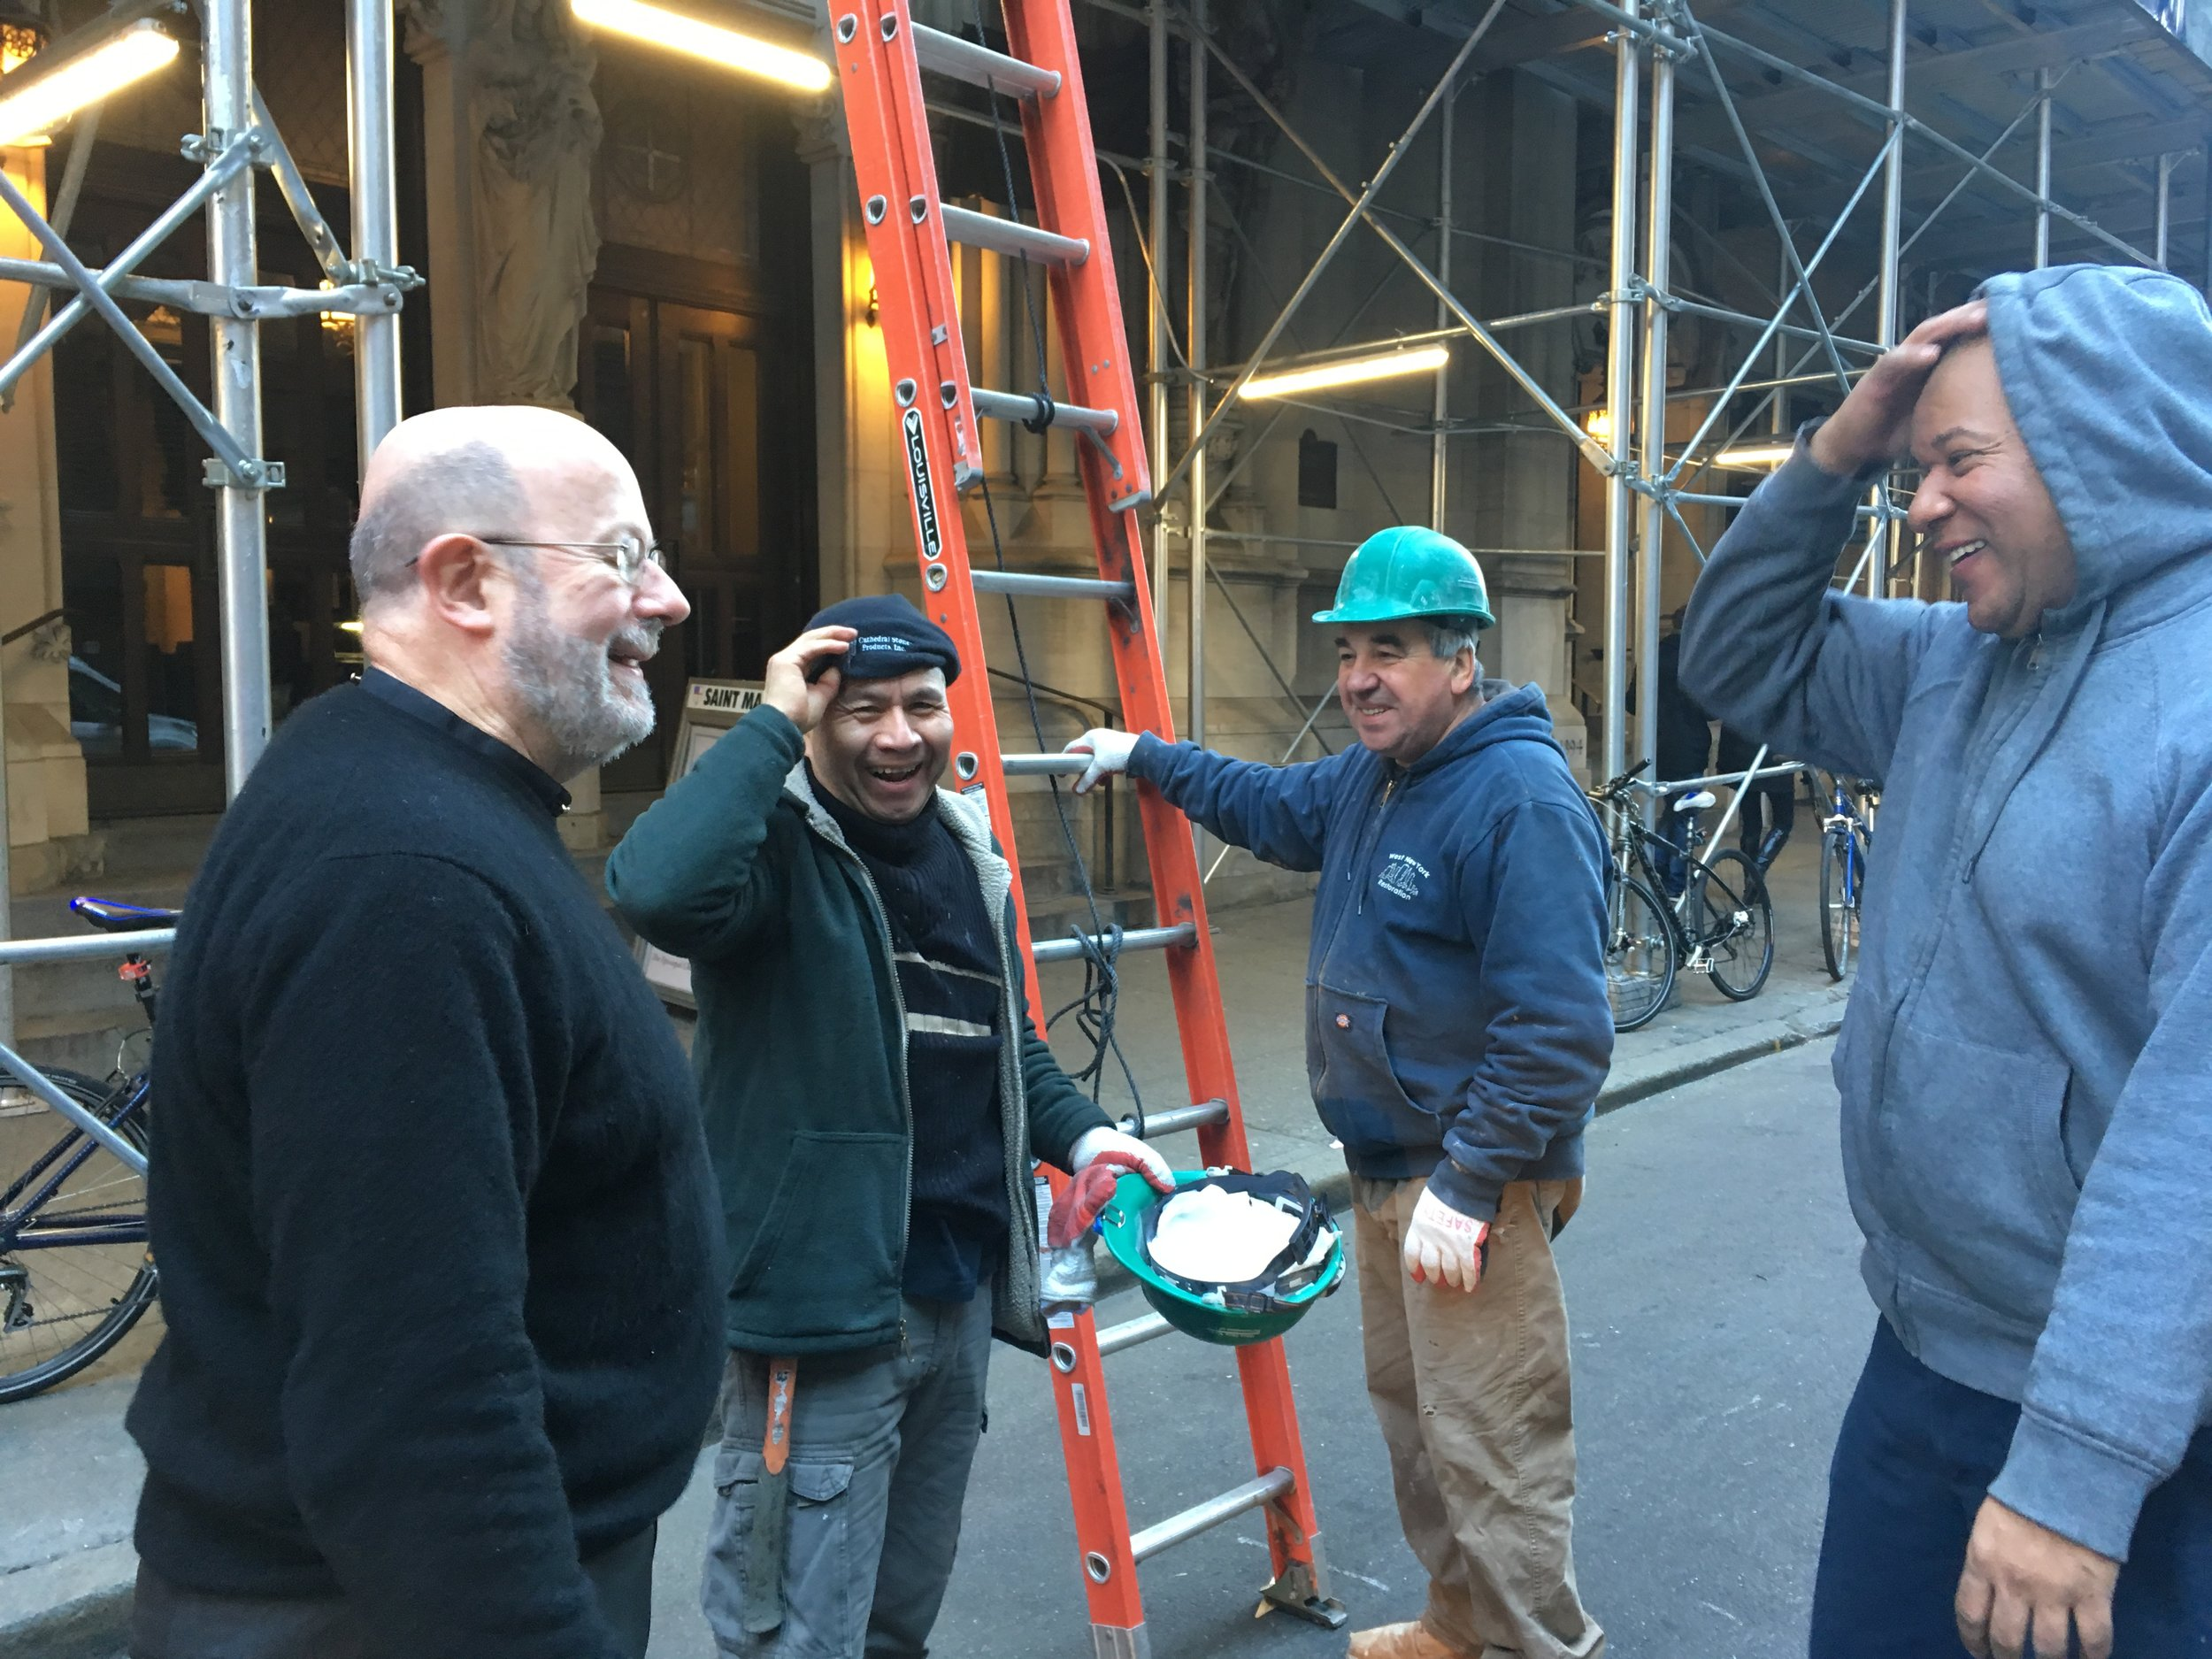 Father Smith (left) and Sexton Mario Martinez (right) with West New York crew members who helped put up the new banners.